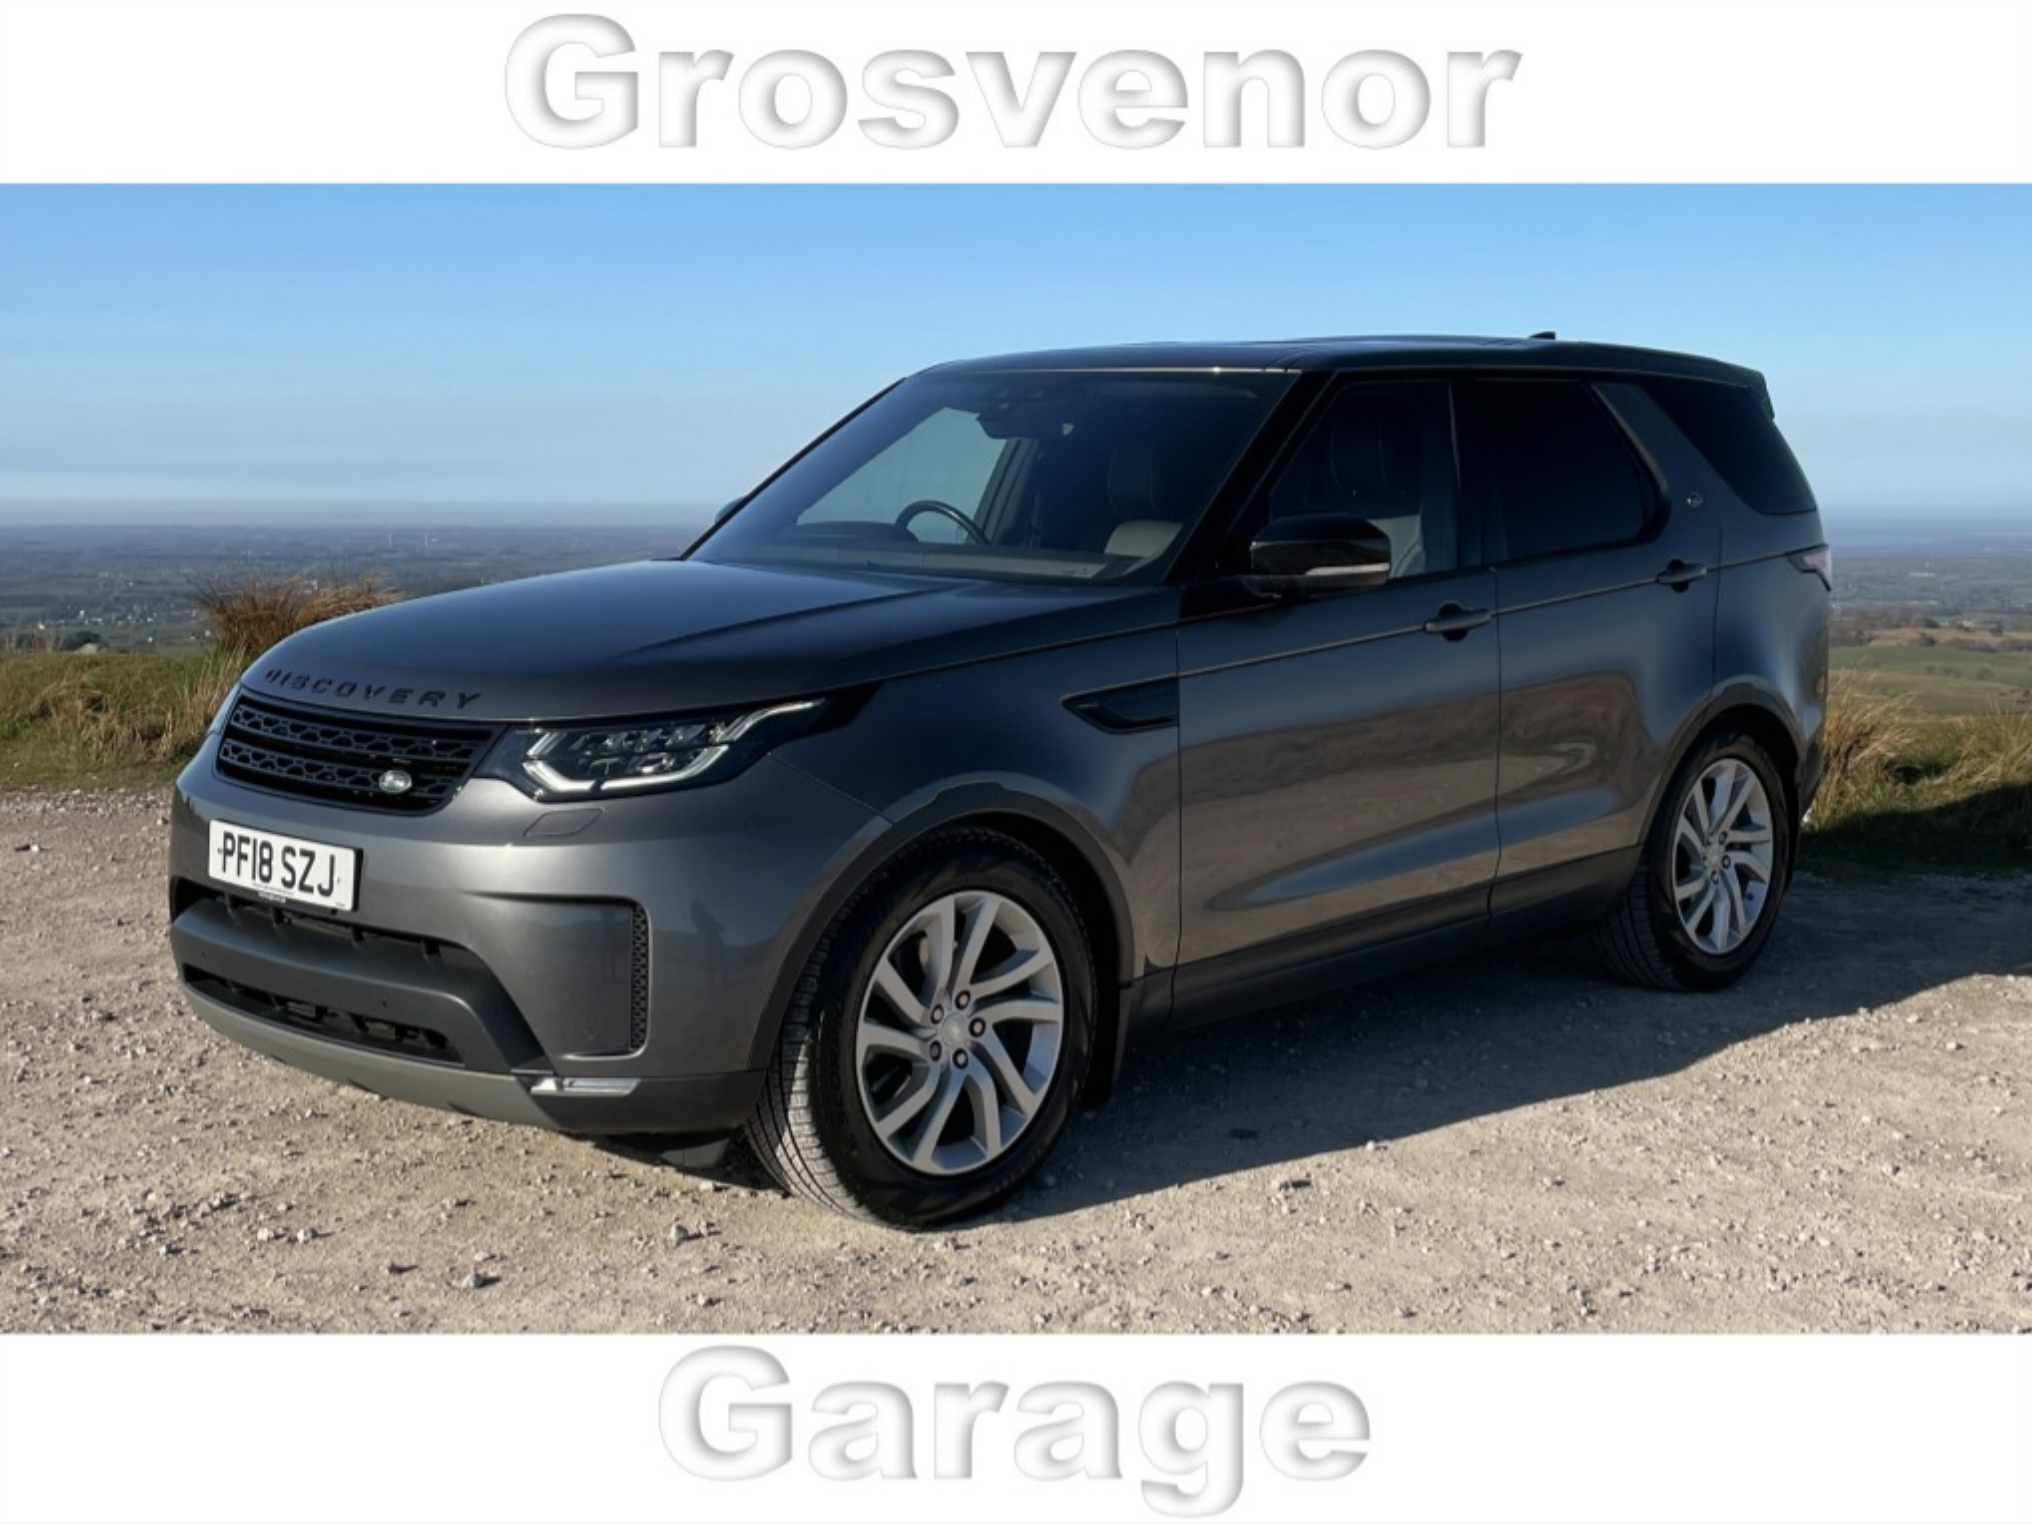 2018 (18) LAND ROVER DISCOVERY 3.0 COMMERCIAL TD6 HSE AUTOMATIC